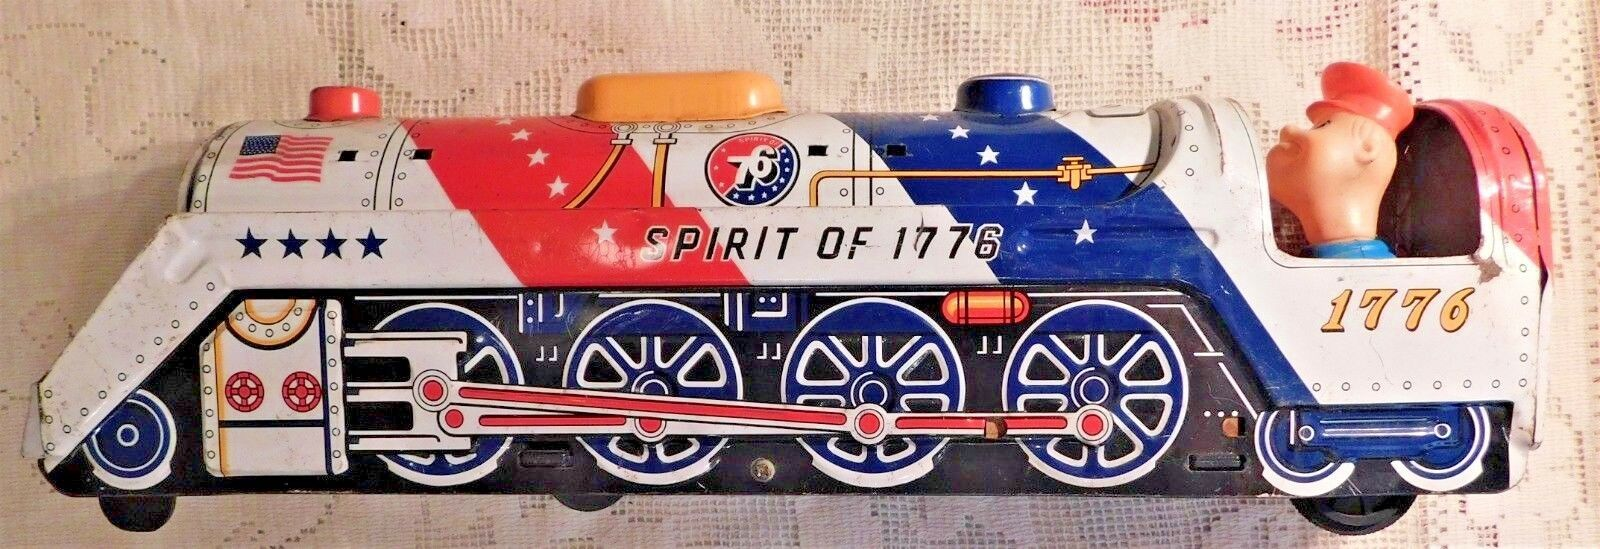 VINTAGE 1950's MODERN TOYS JAPAN  SPIRIT OF 1776  BATTERY OPERATED TIN TOY TRAIN